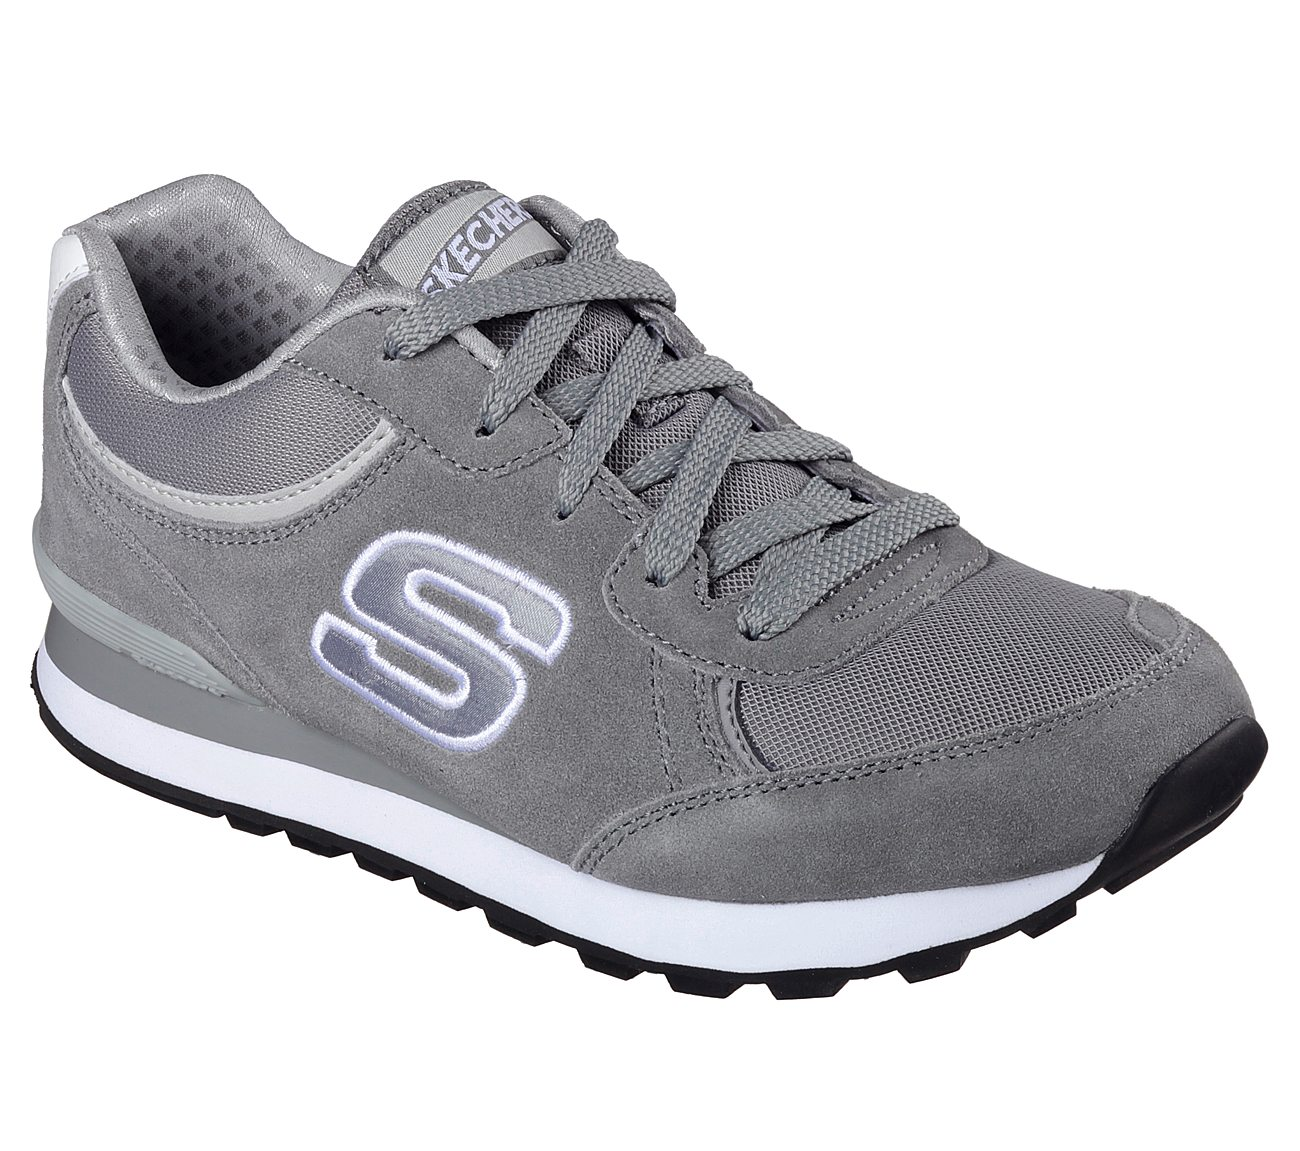 2047d56d27f1 Buy SKECHERS OG 82 - Classic Kicks SKECHERS Originals Shoes only £54.00